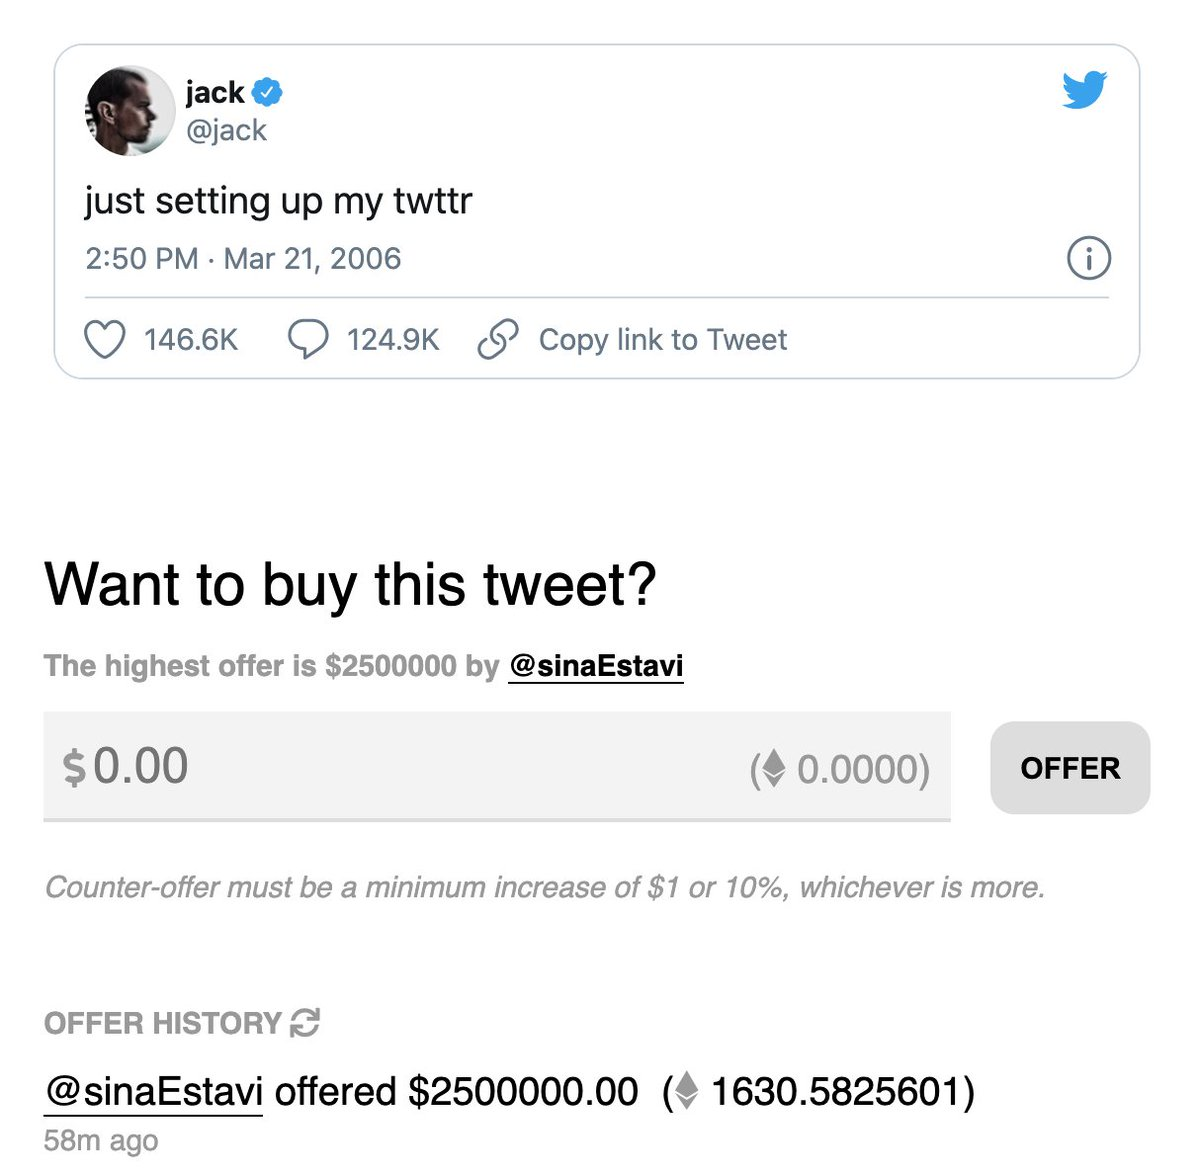 The best offer for @jacks first tweet now stands at $2.5M. 🤯 v.cent.co/tweet/20